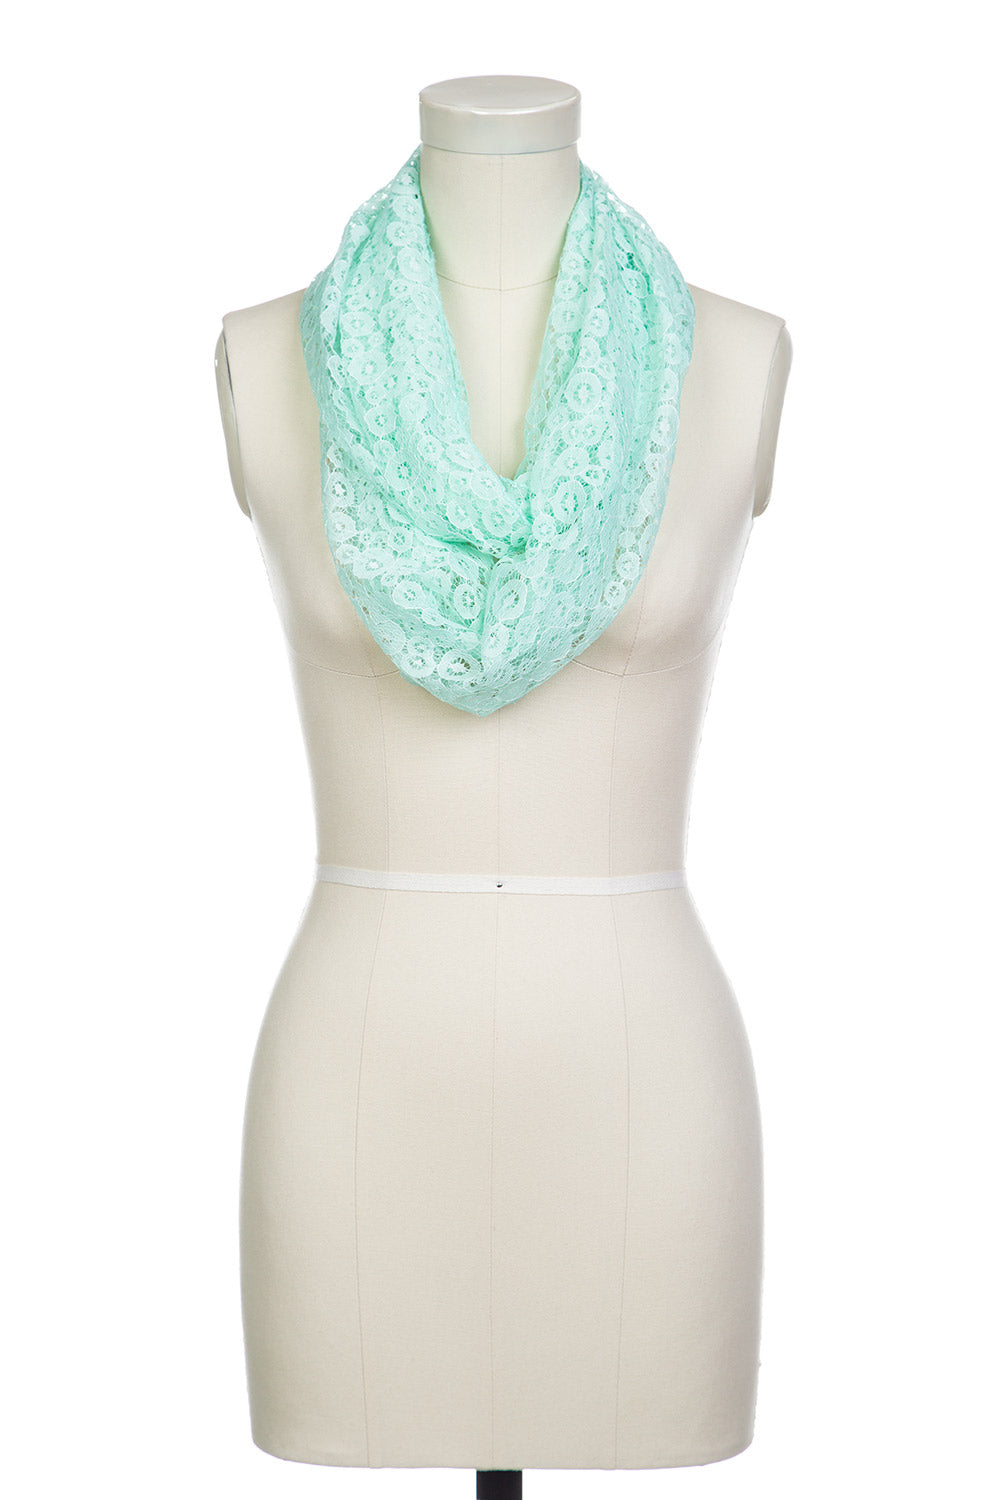 Type 1 Infinite Lace Scarf